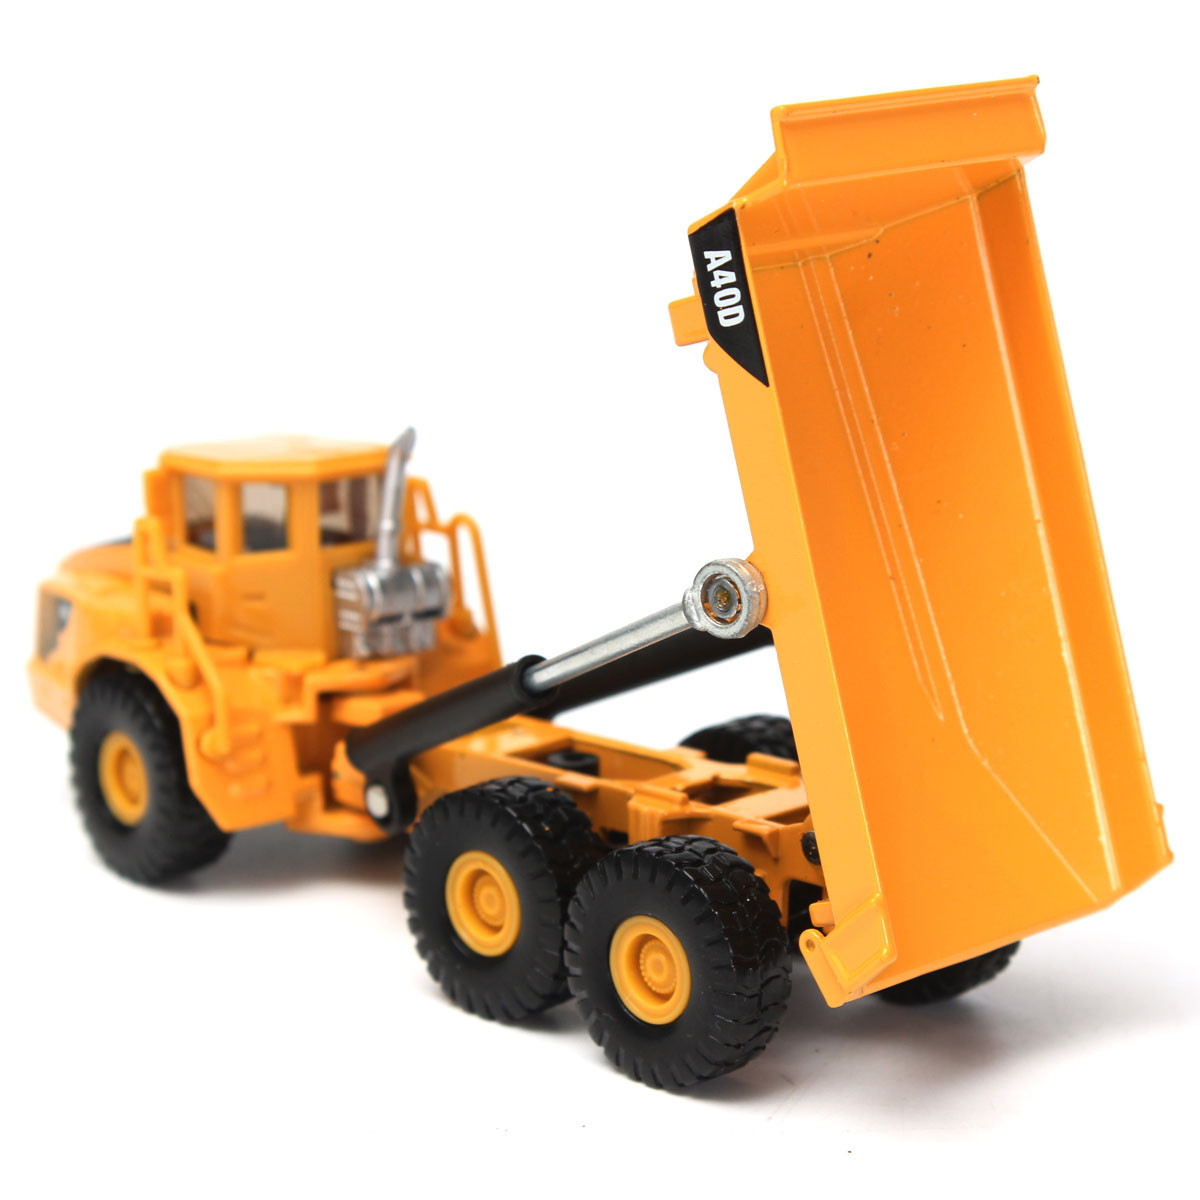 1:87 Scale Alloy Diecast Dump Truck Construction Vehicle Cars Lorry To